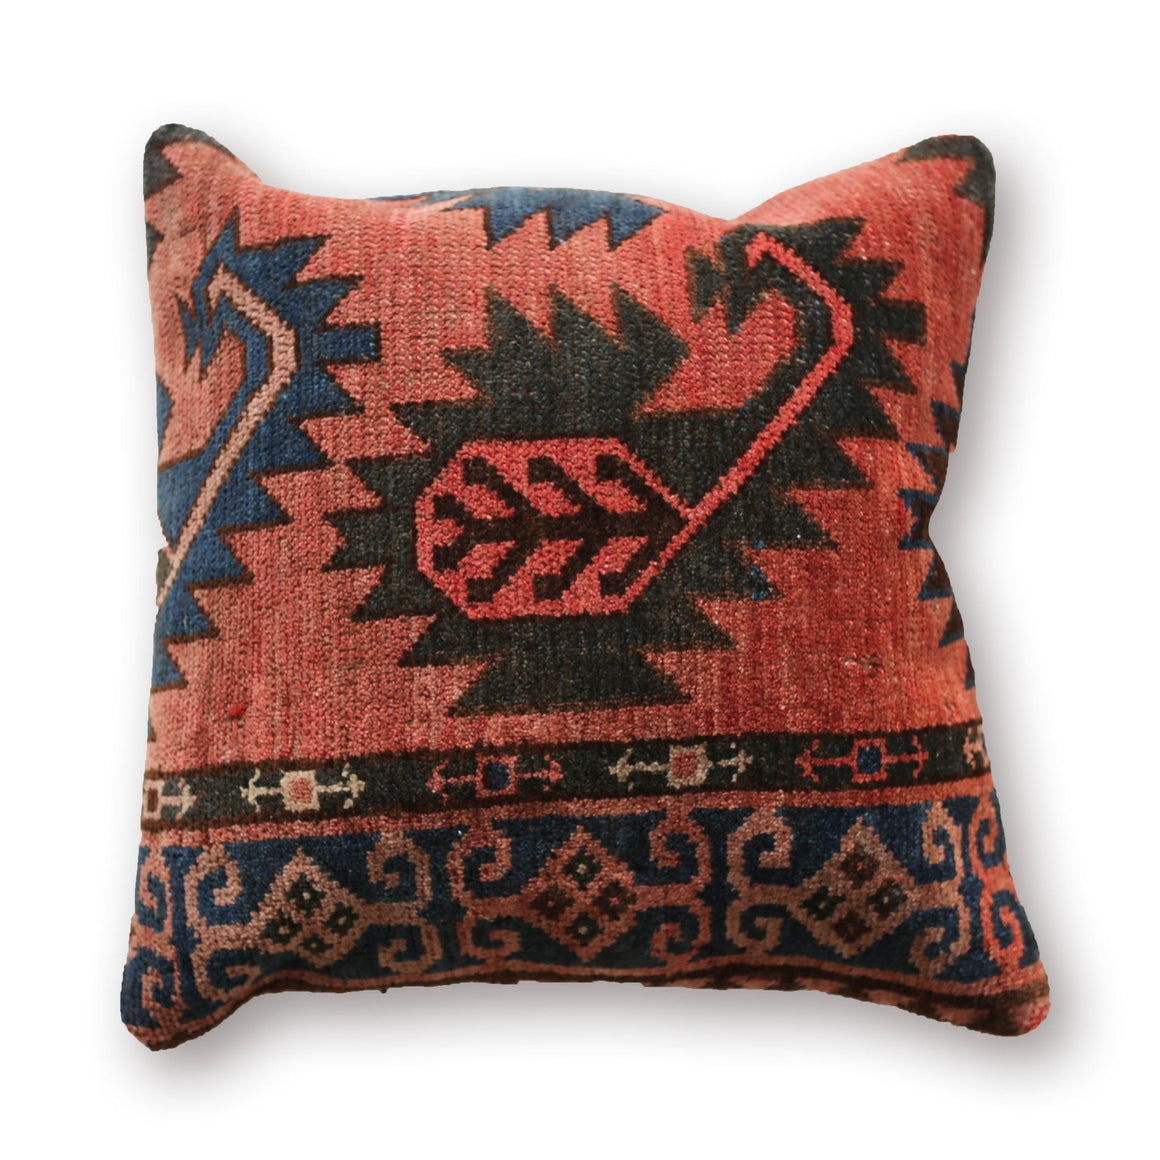 Vintage Pillow No. 16